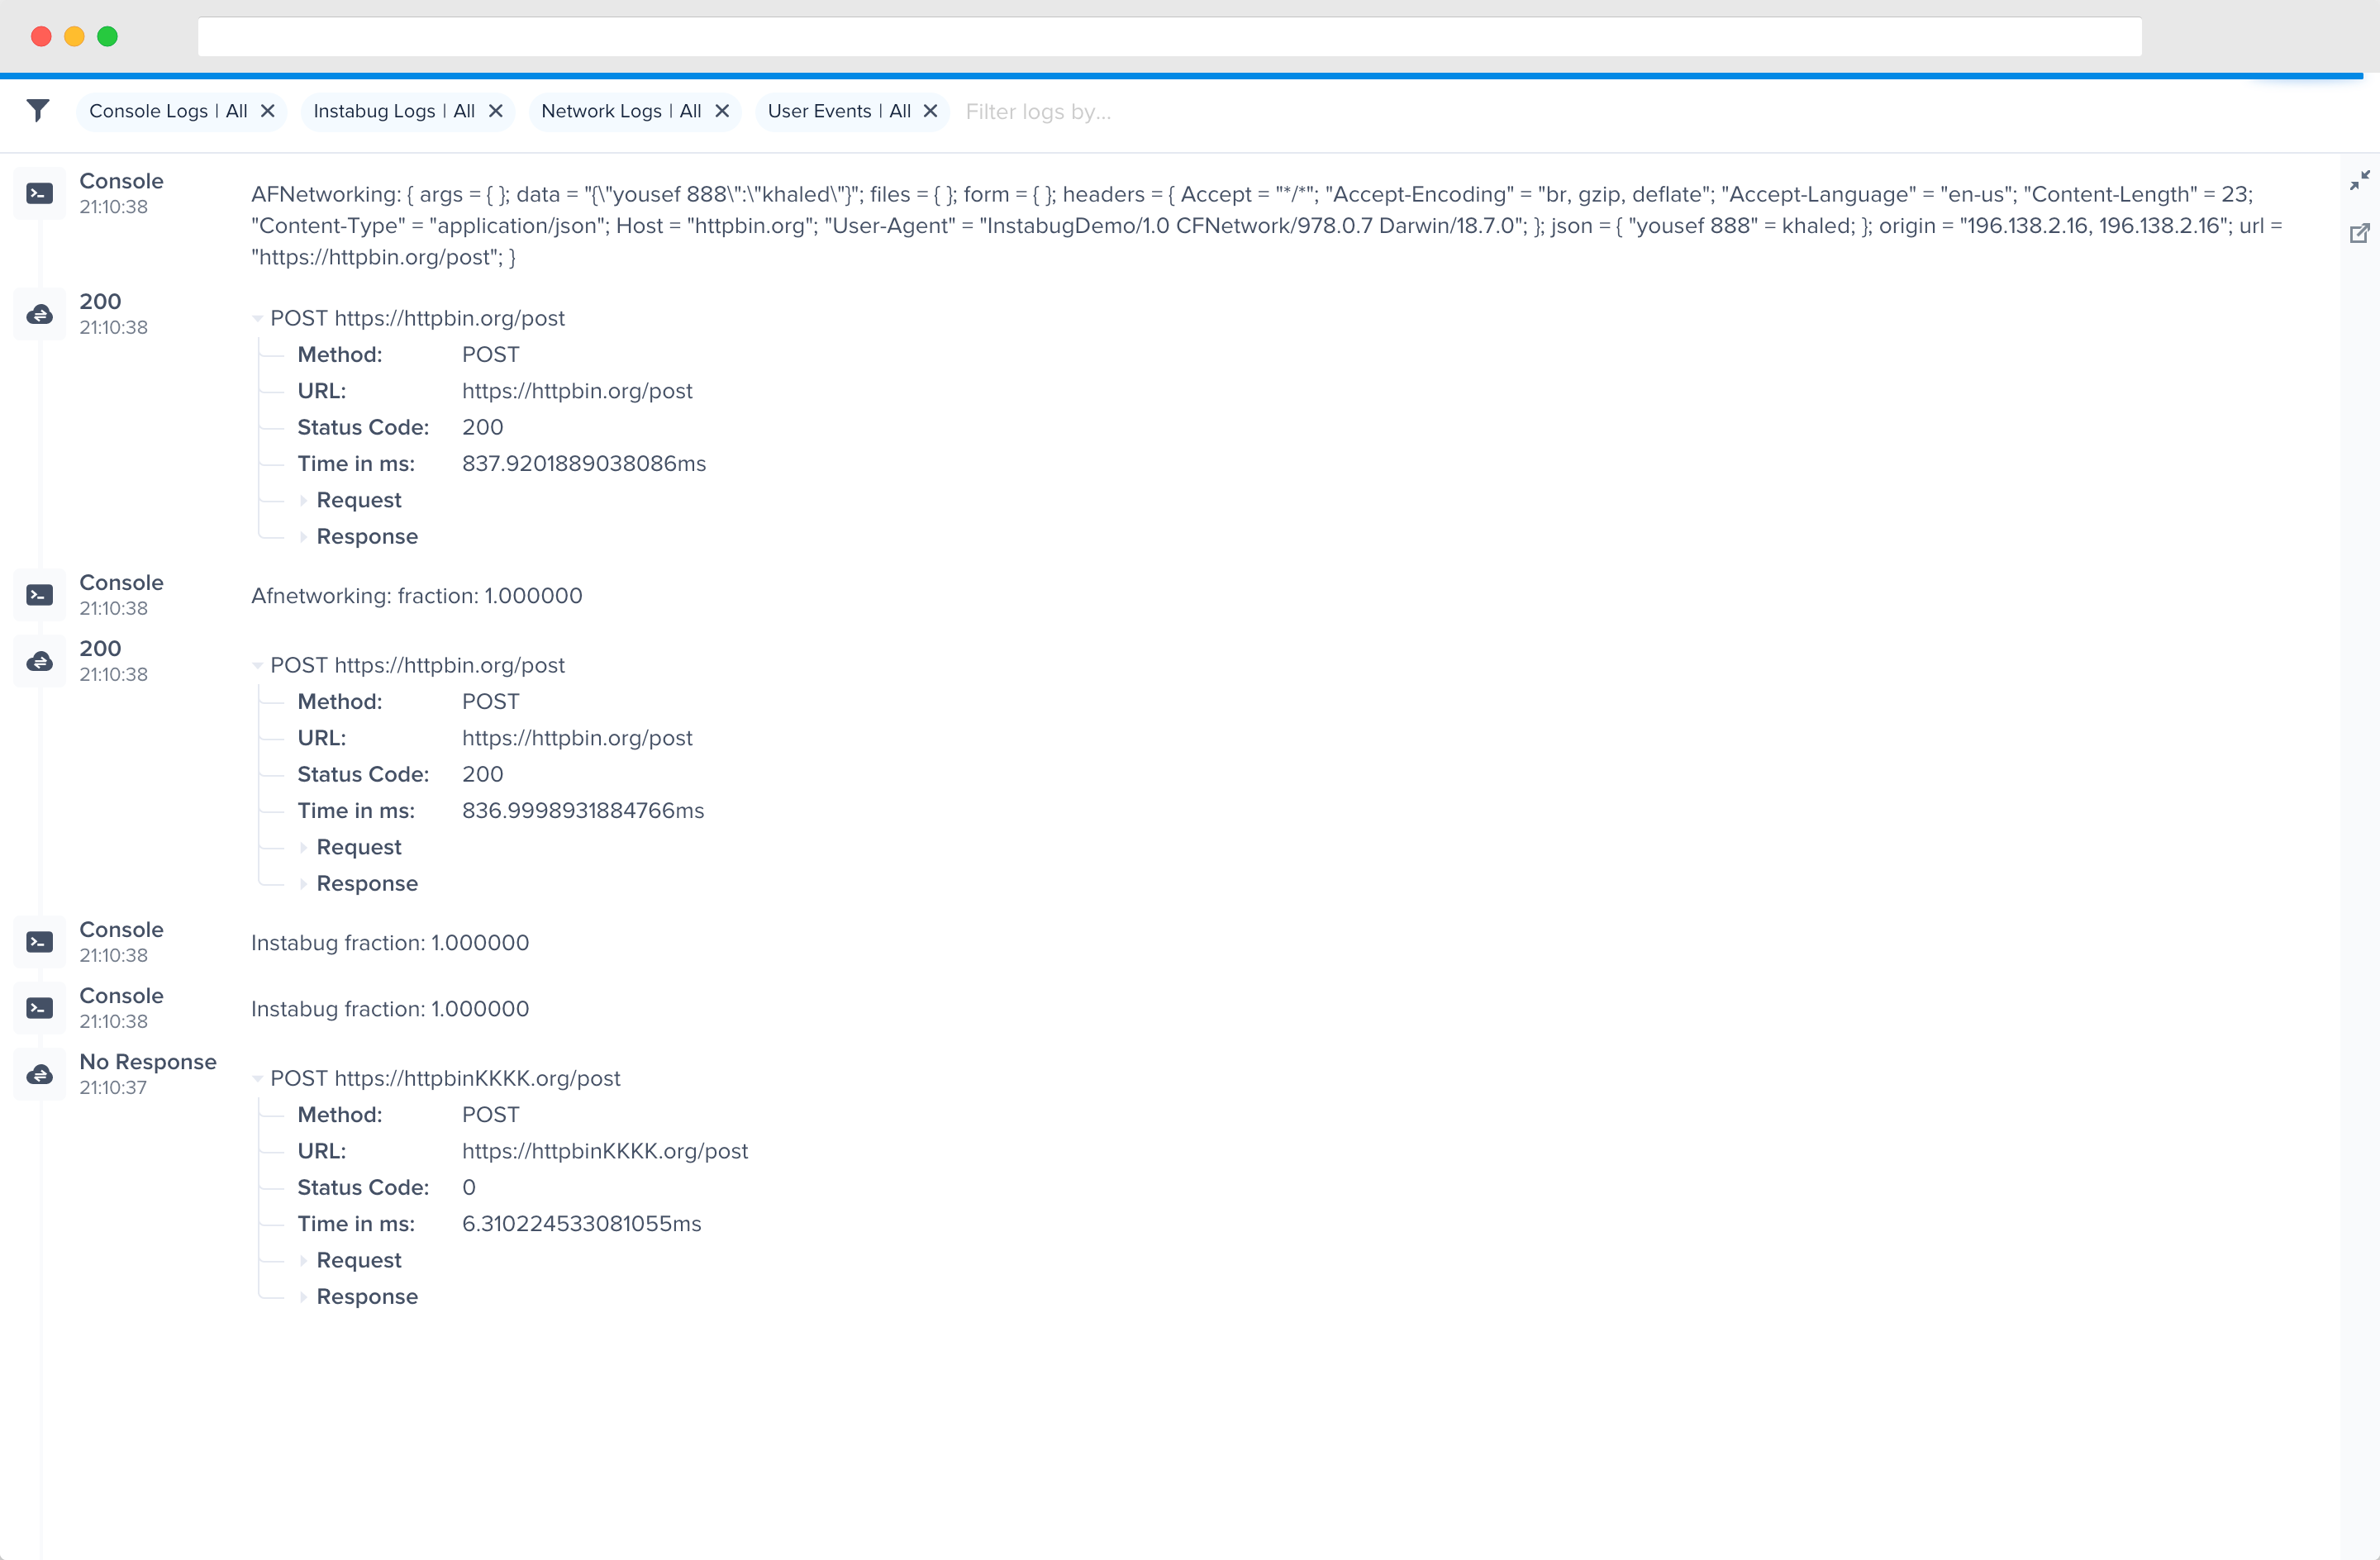 An example of the expanded logs view in your dashboard.